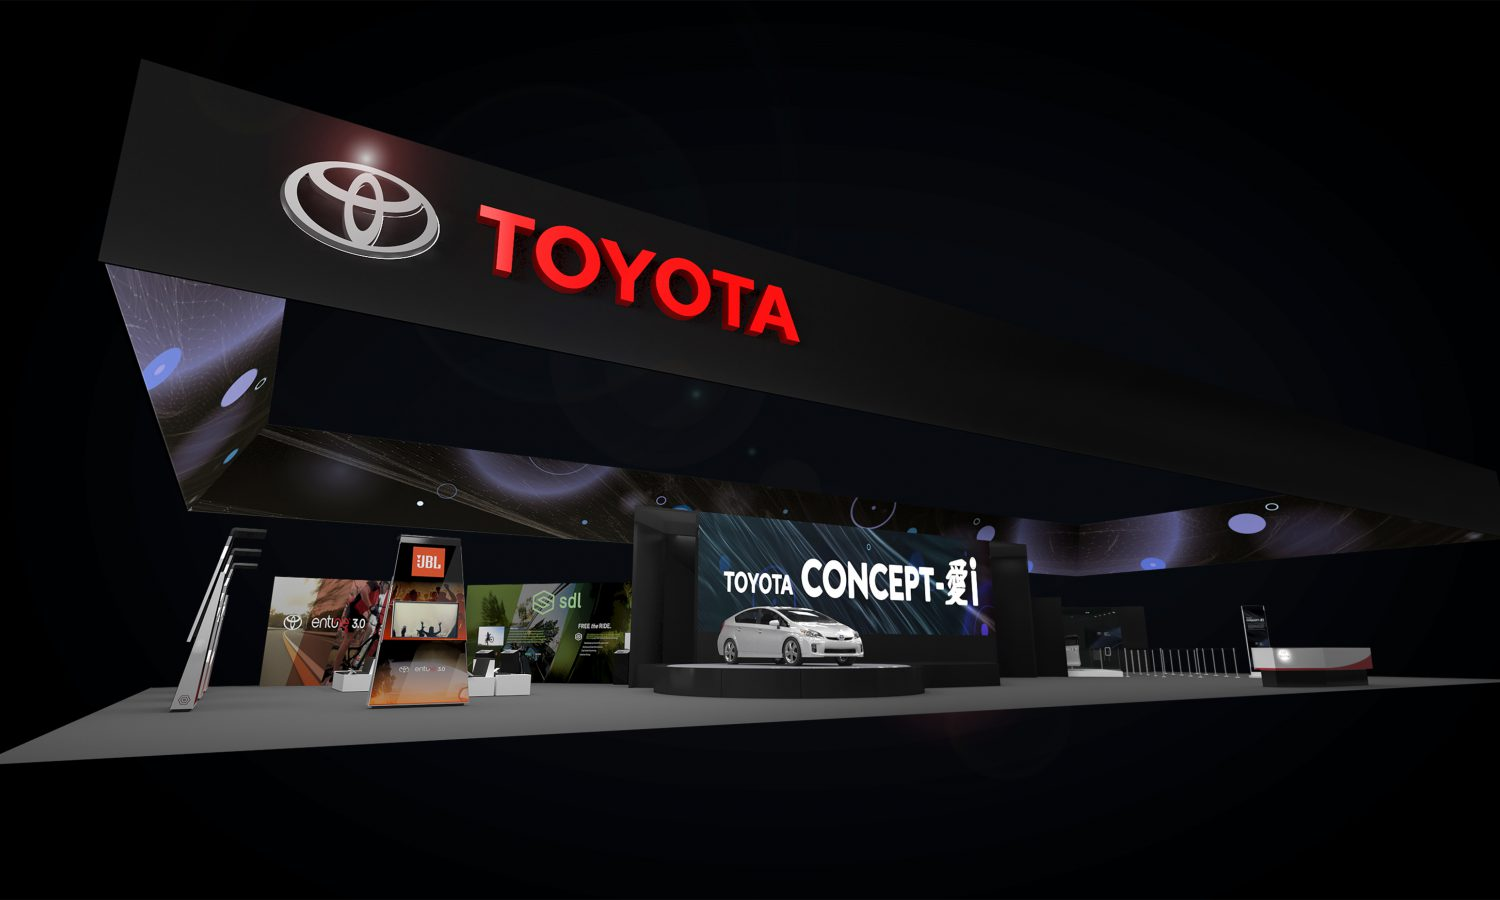 Toyota Shows the Future of Driver-Vehicle Interaction at the Consumer Electronics Show